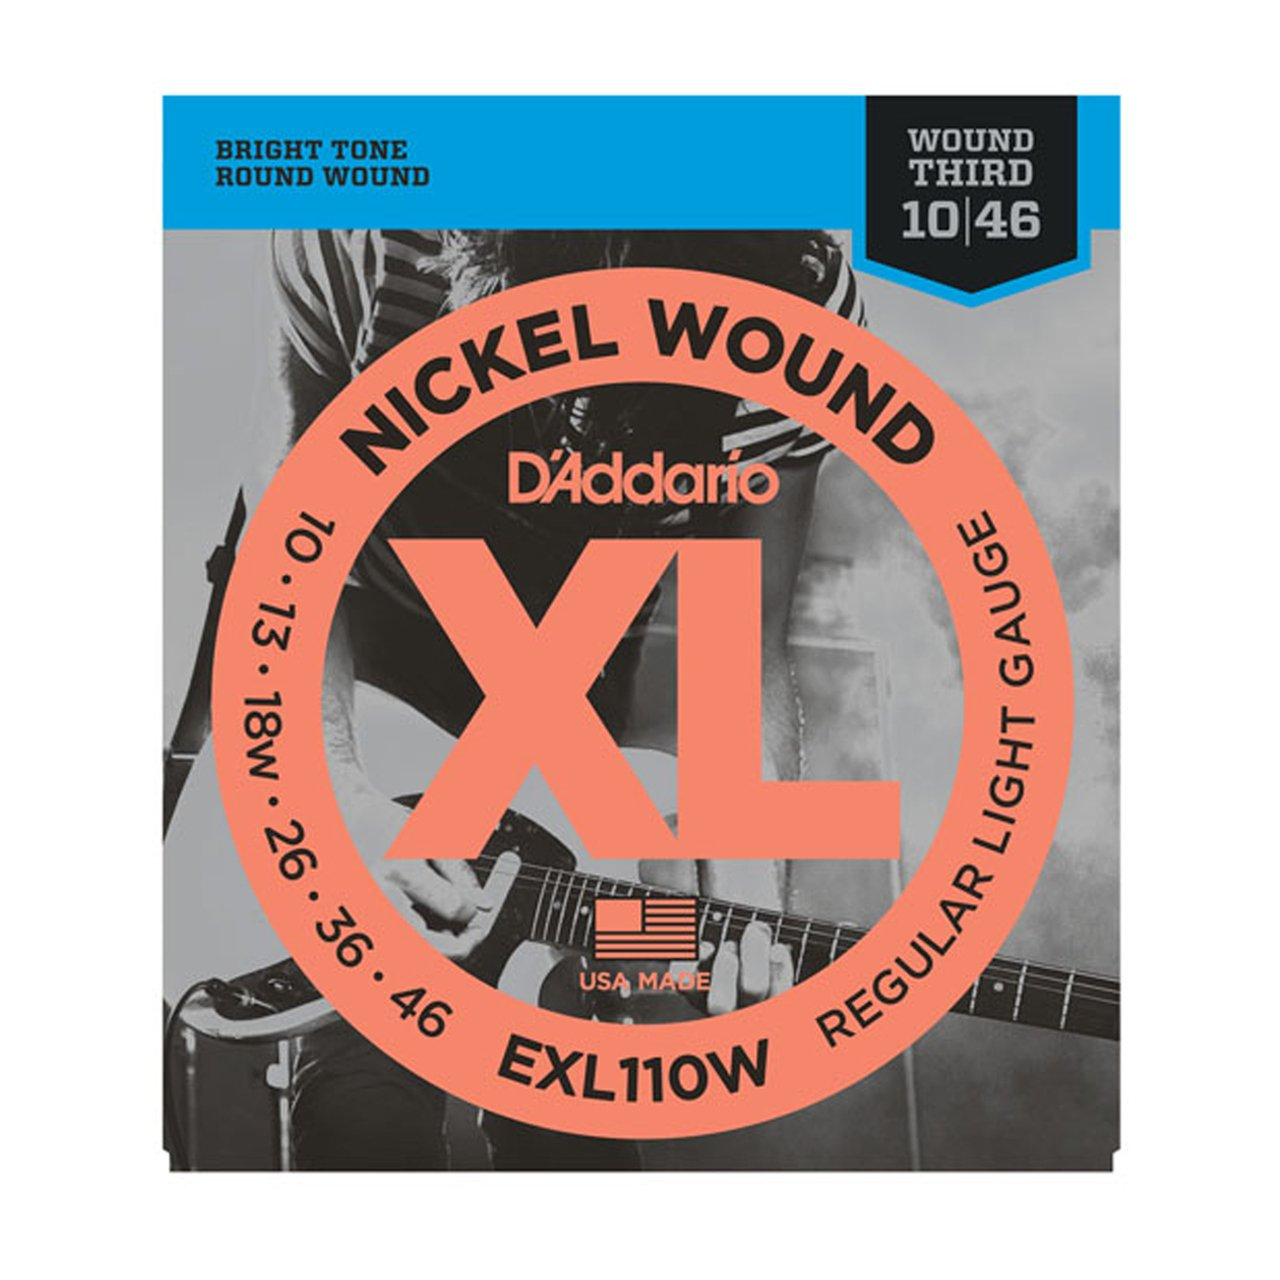 D'Addario EXL110W Nickel Regular Light Electric Guitar Strings - Wound 3rd